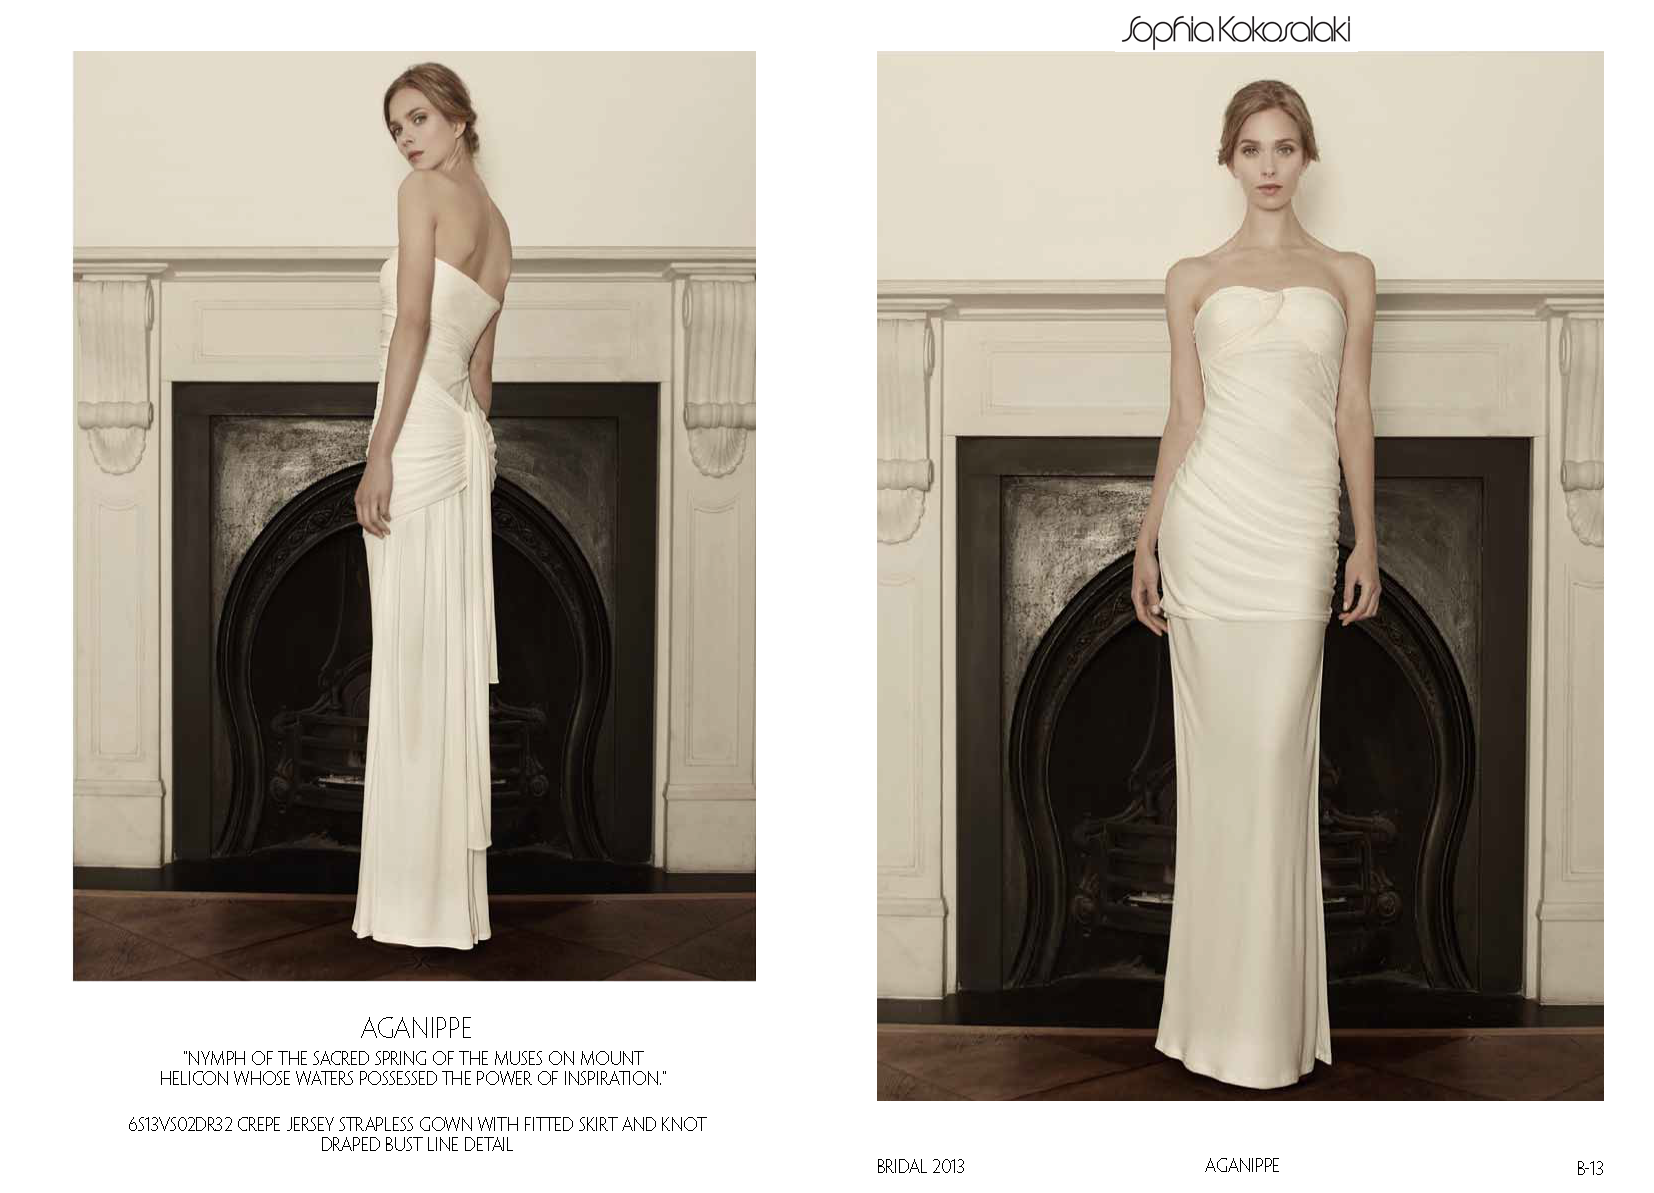 12.07.11 - 13SS Look Book Bridal & Luxury Collection Sophia Kokosalaki l..._Page_14.png